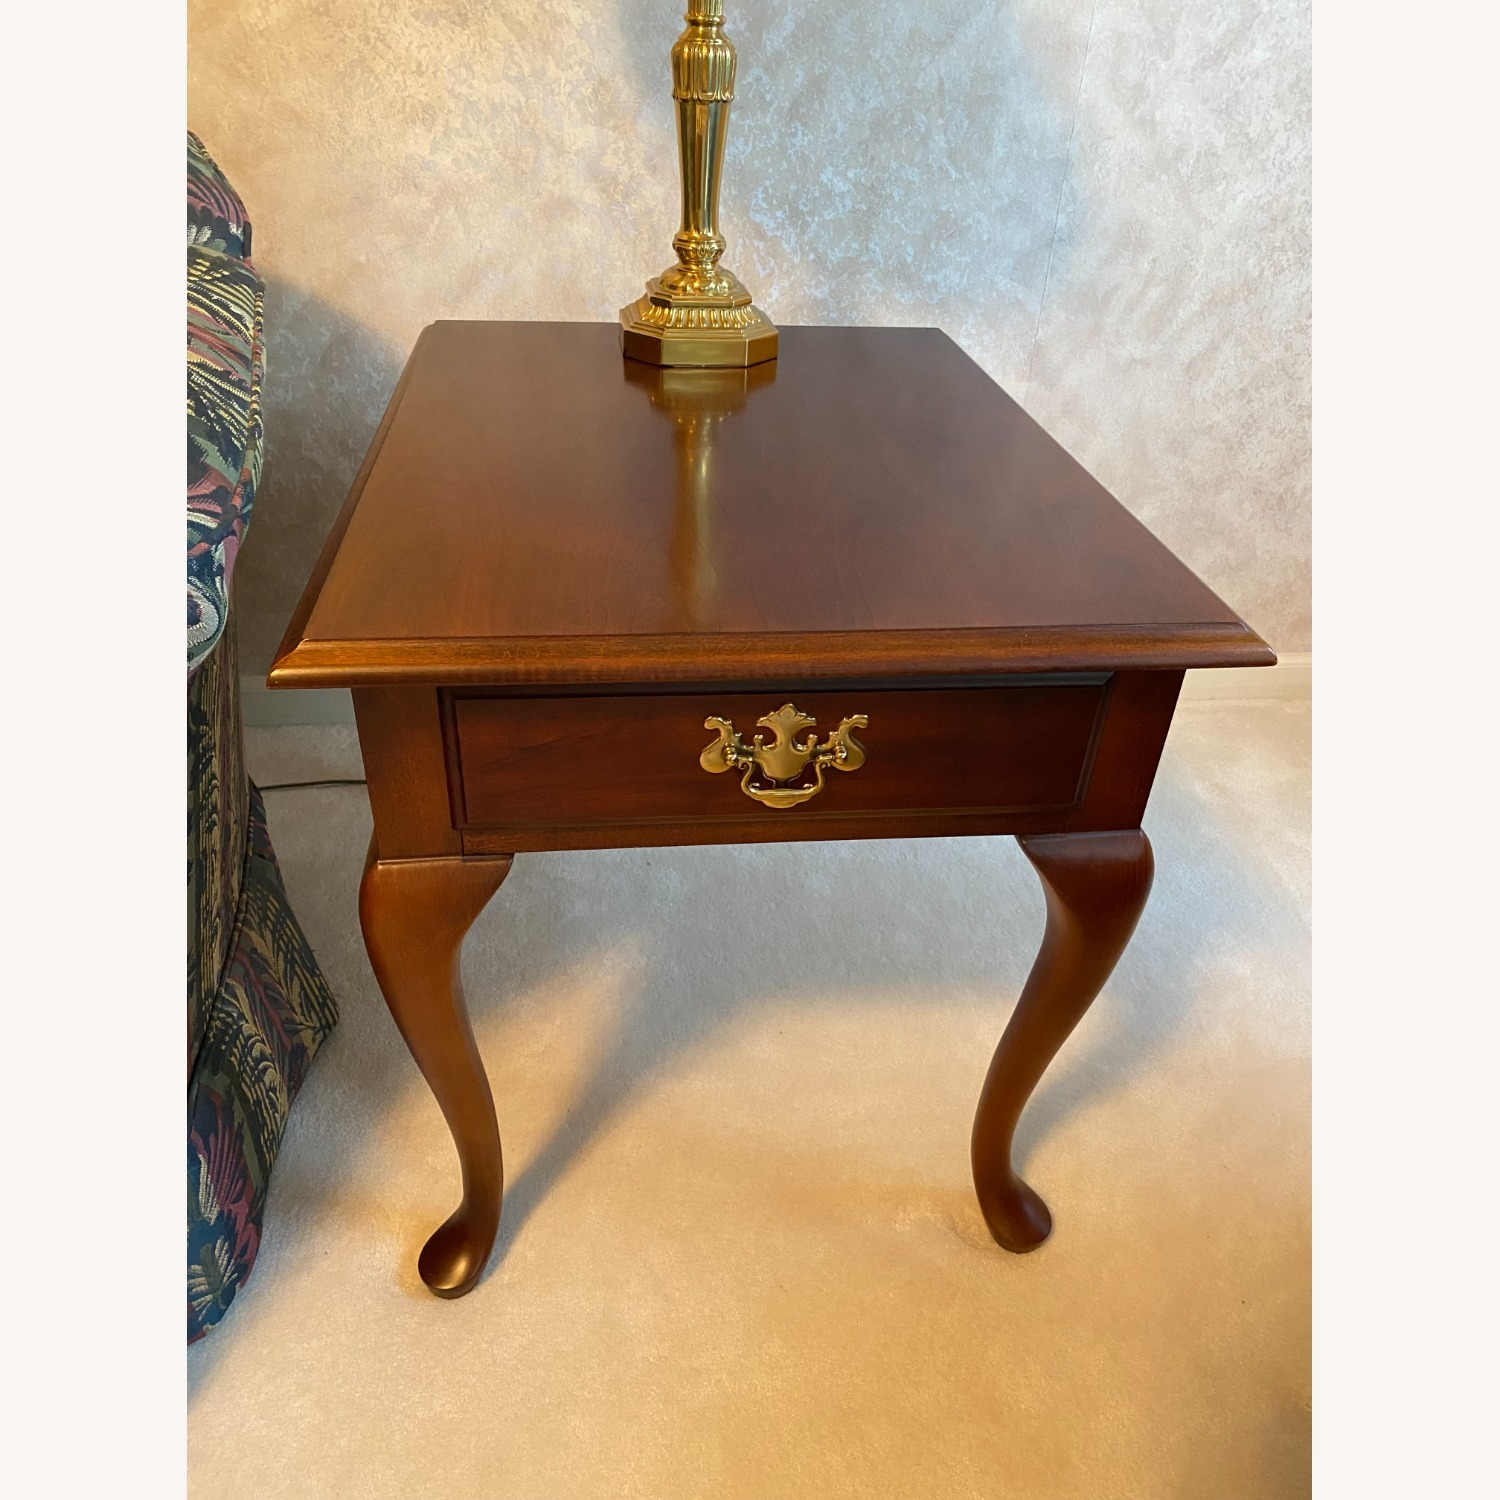 Thomasville Winston Court End Tables (2) - image-2